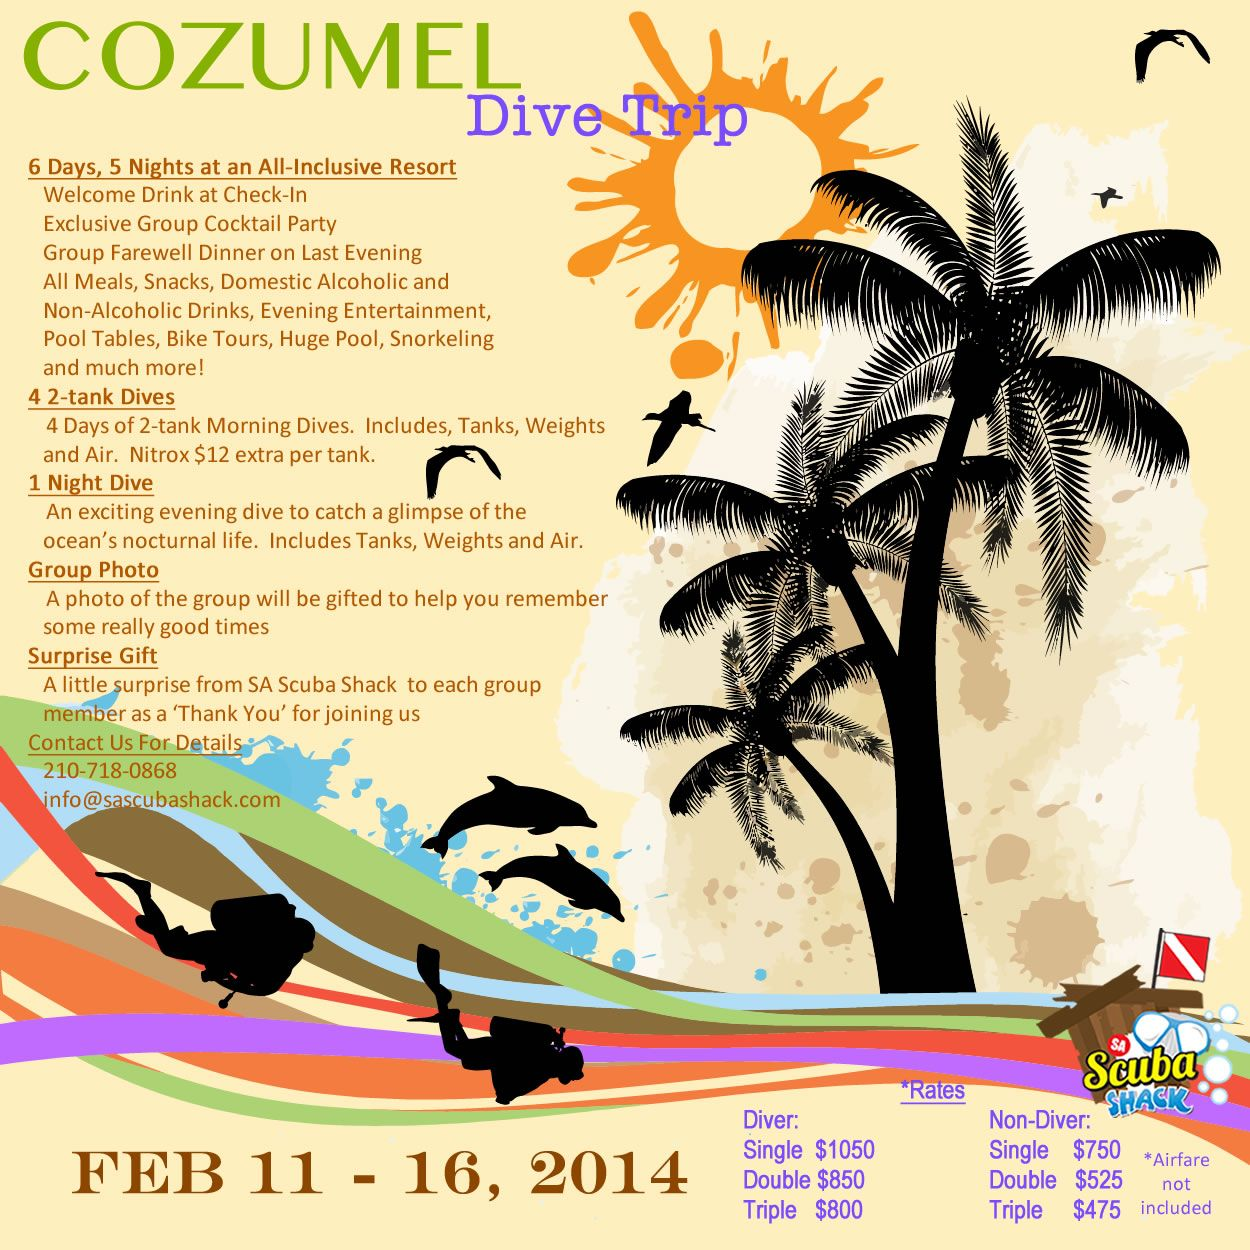 Let's beat the spring breakers and join us for a dive trip to Cozumel in February.  Divers and Non-Divers are welcome!